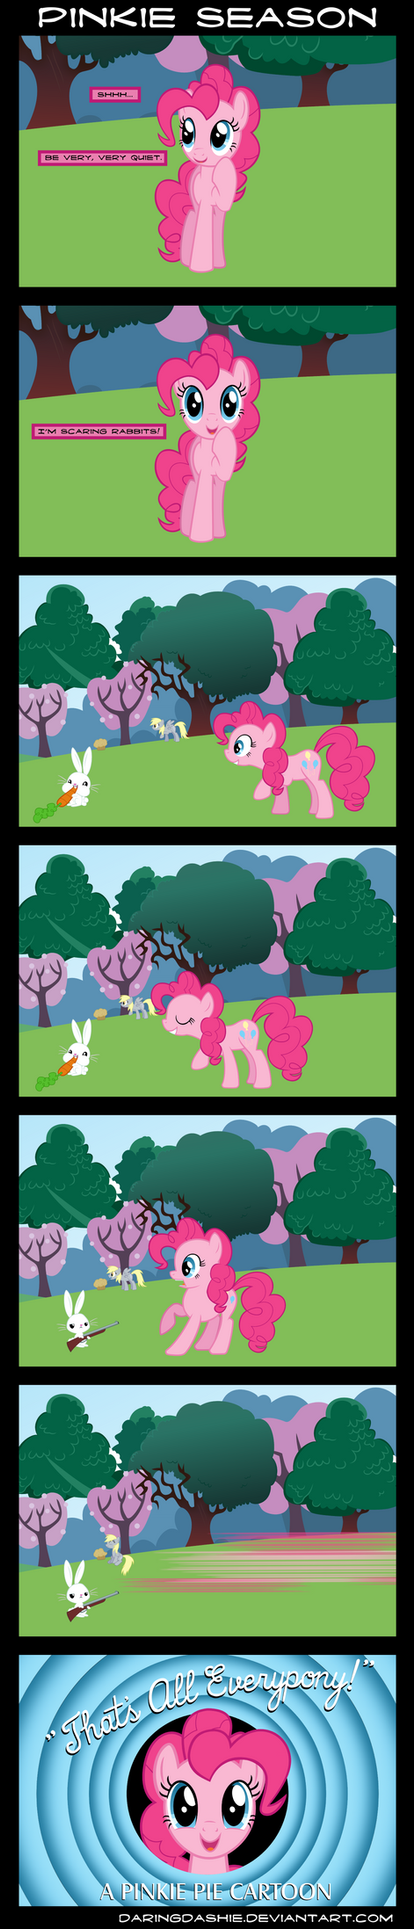 Comic - Pinkie Season by DaringDashie